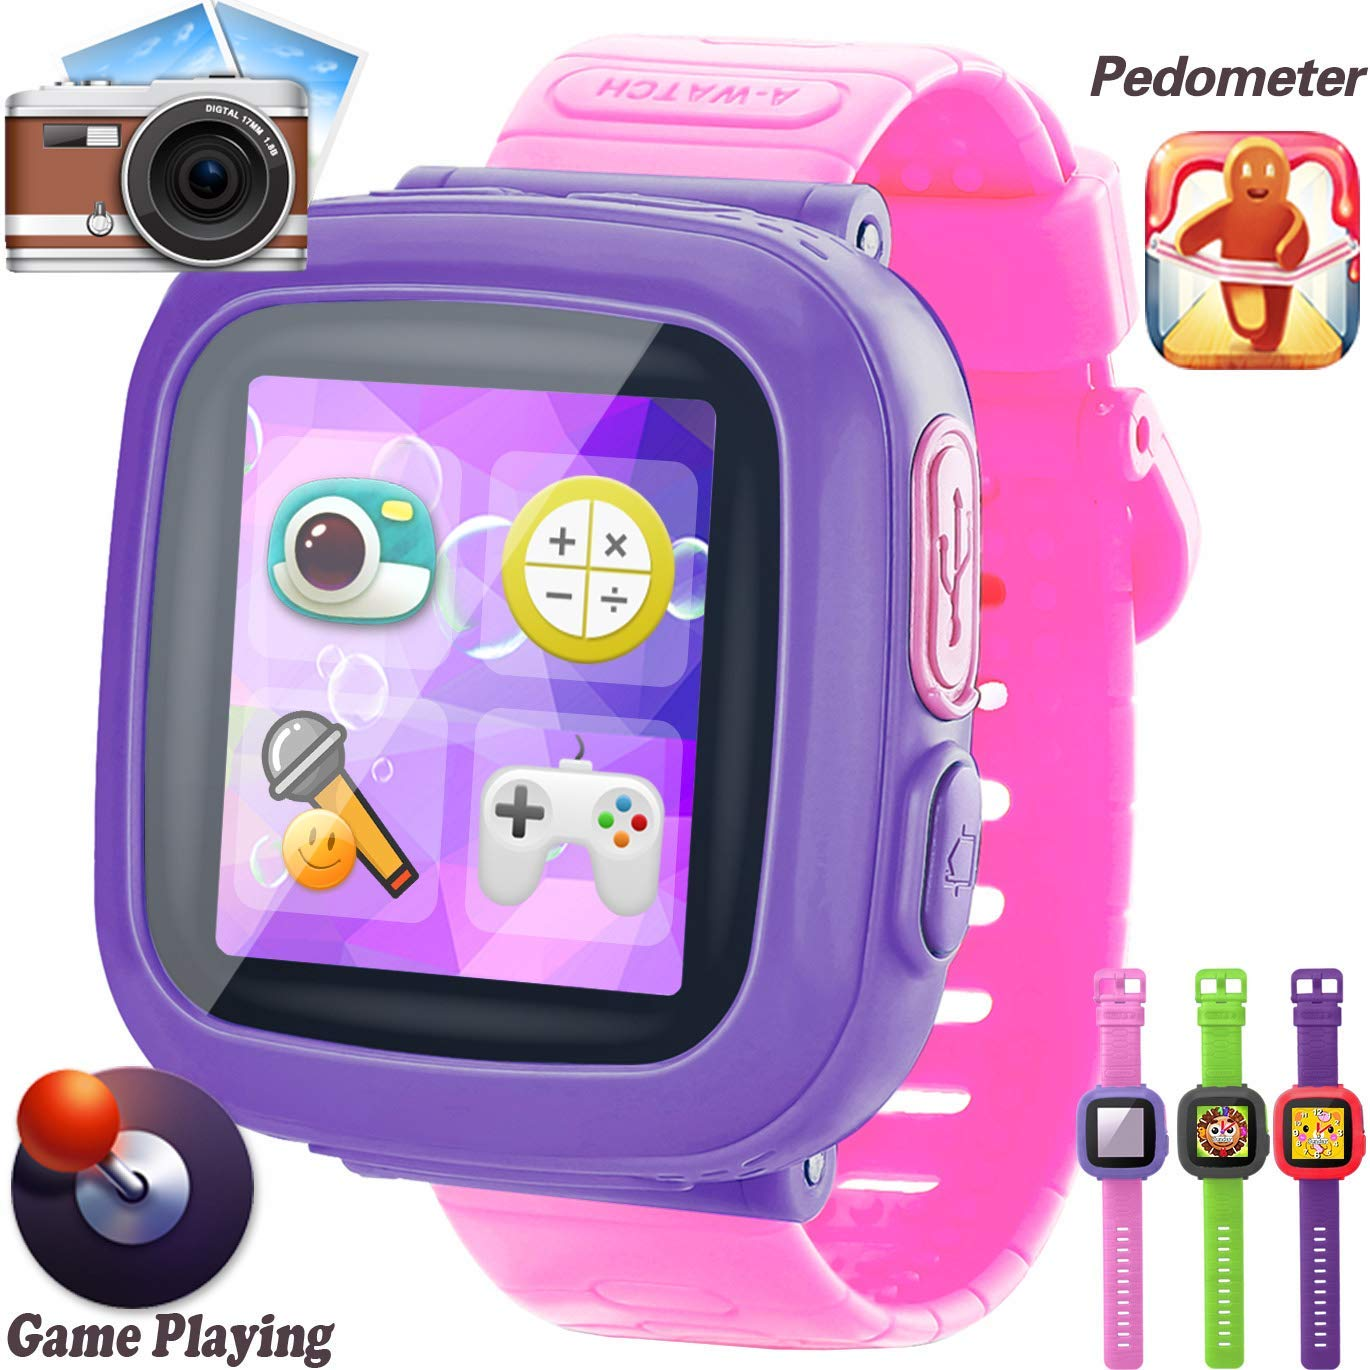 GBD Kids Game Watch, [AR Pro Edition] Boys and Girls Touch Screen Smart Watches with Games Pedometer Camera Alarm Clock Stop Watch Wrist Band Kids Electronic Learning Toys School Birthday Gifts (Pink) by GBD